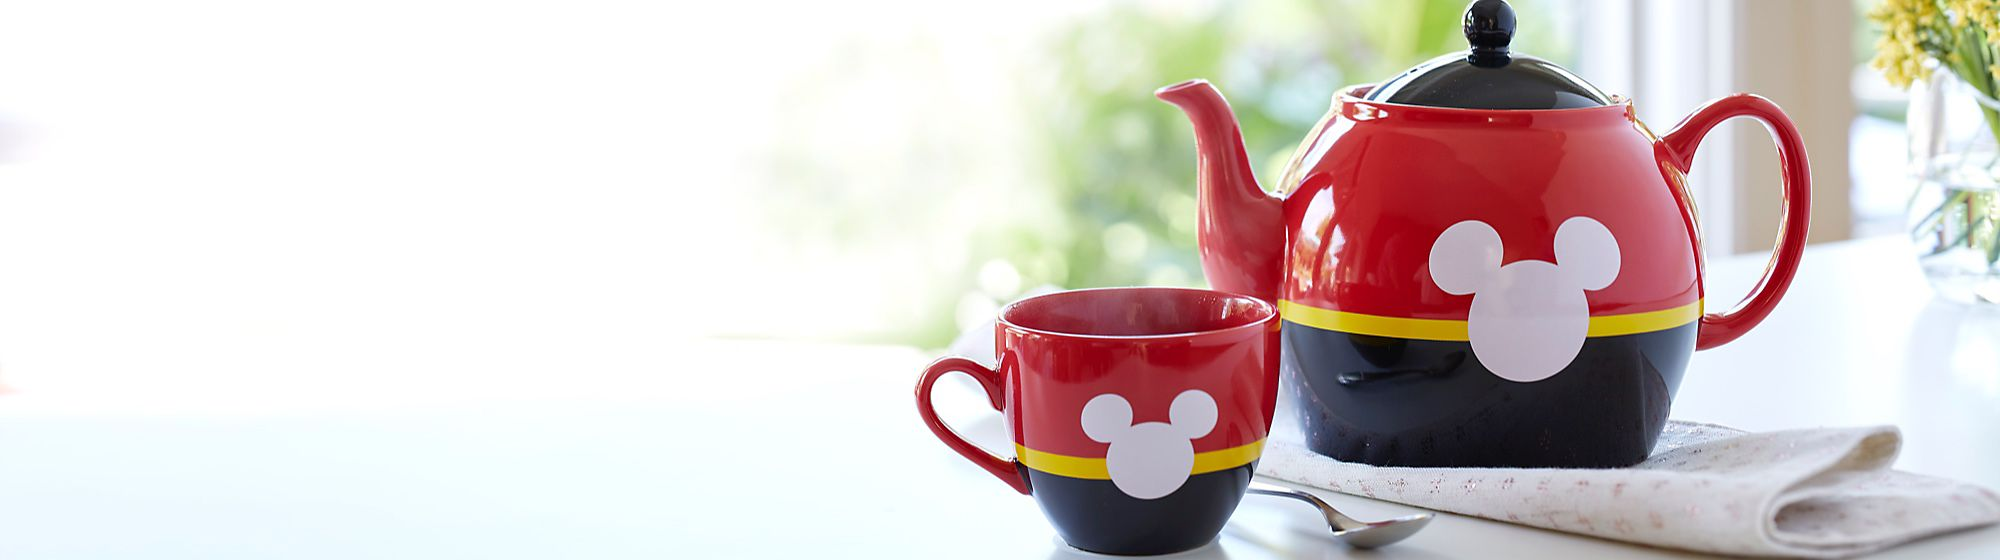 Homeware Bring the magic home with our wondrous range of homeware, including mugs, kitchenware and more